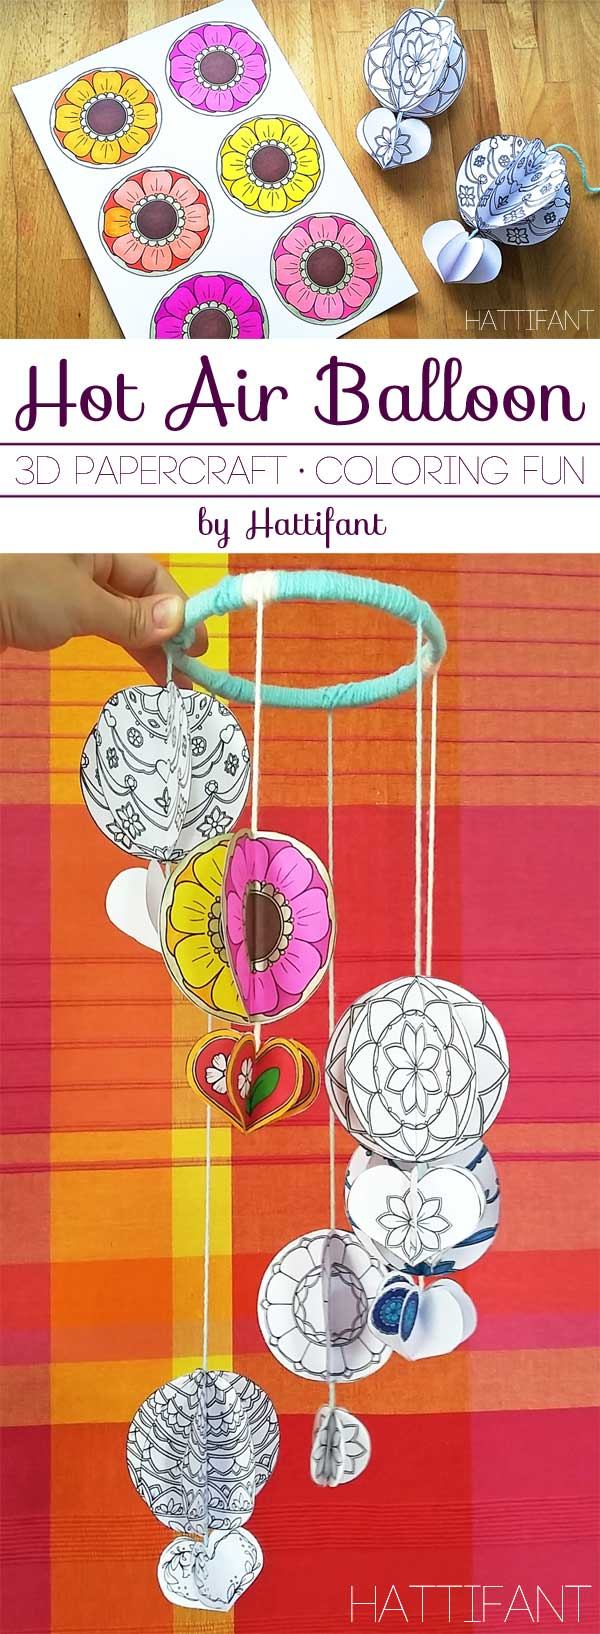 Hattifant's Mandala Hot Air Balloon Papercraft Coloring Pages